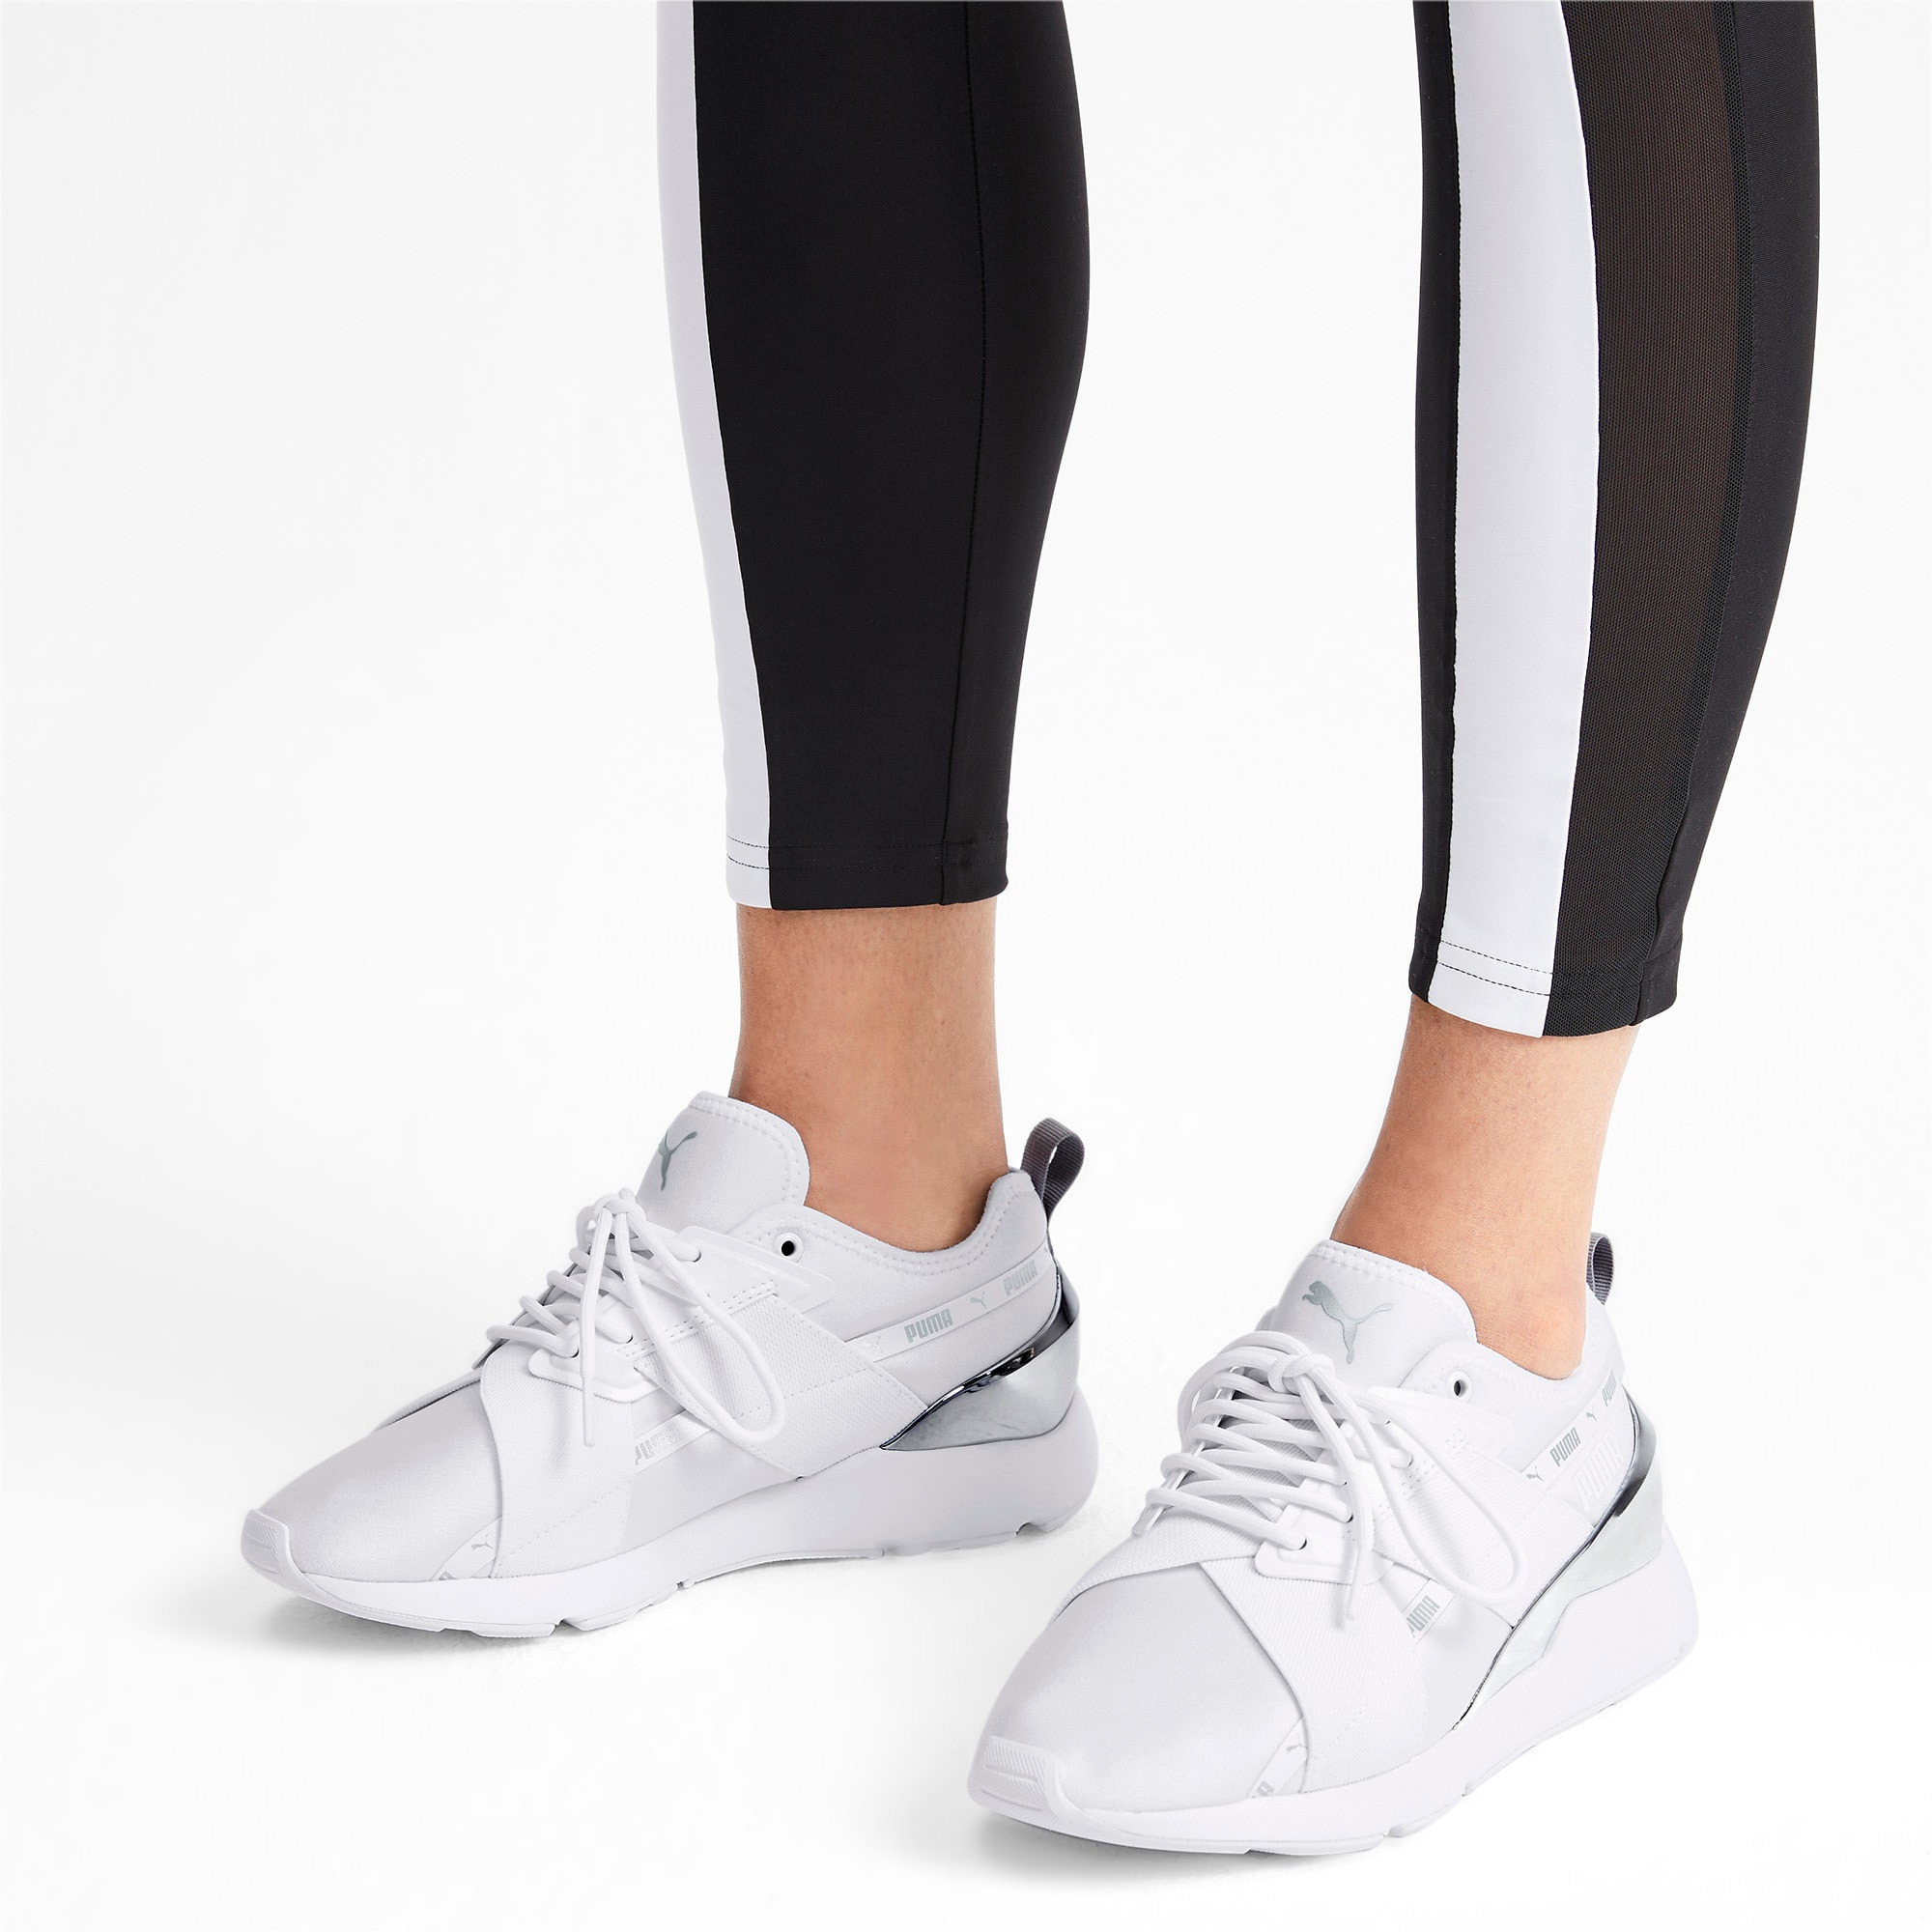 Anteprima 2 di Muse X-2 Metallic Women's Trainers, Puma White, medio